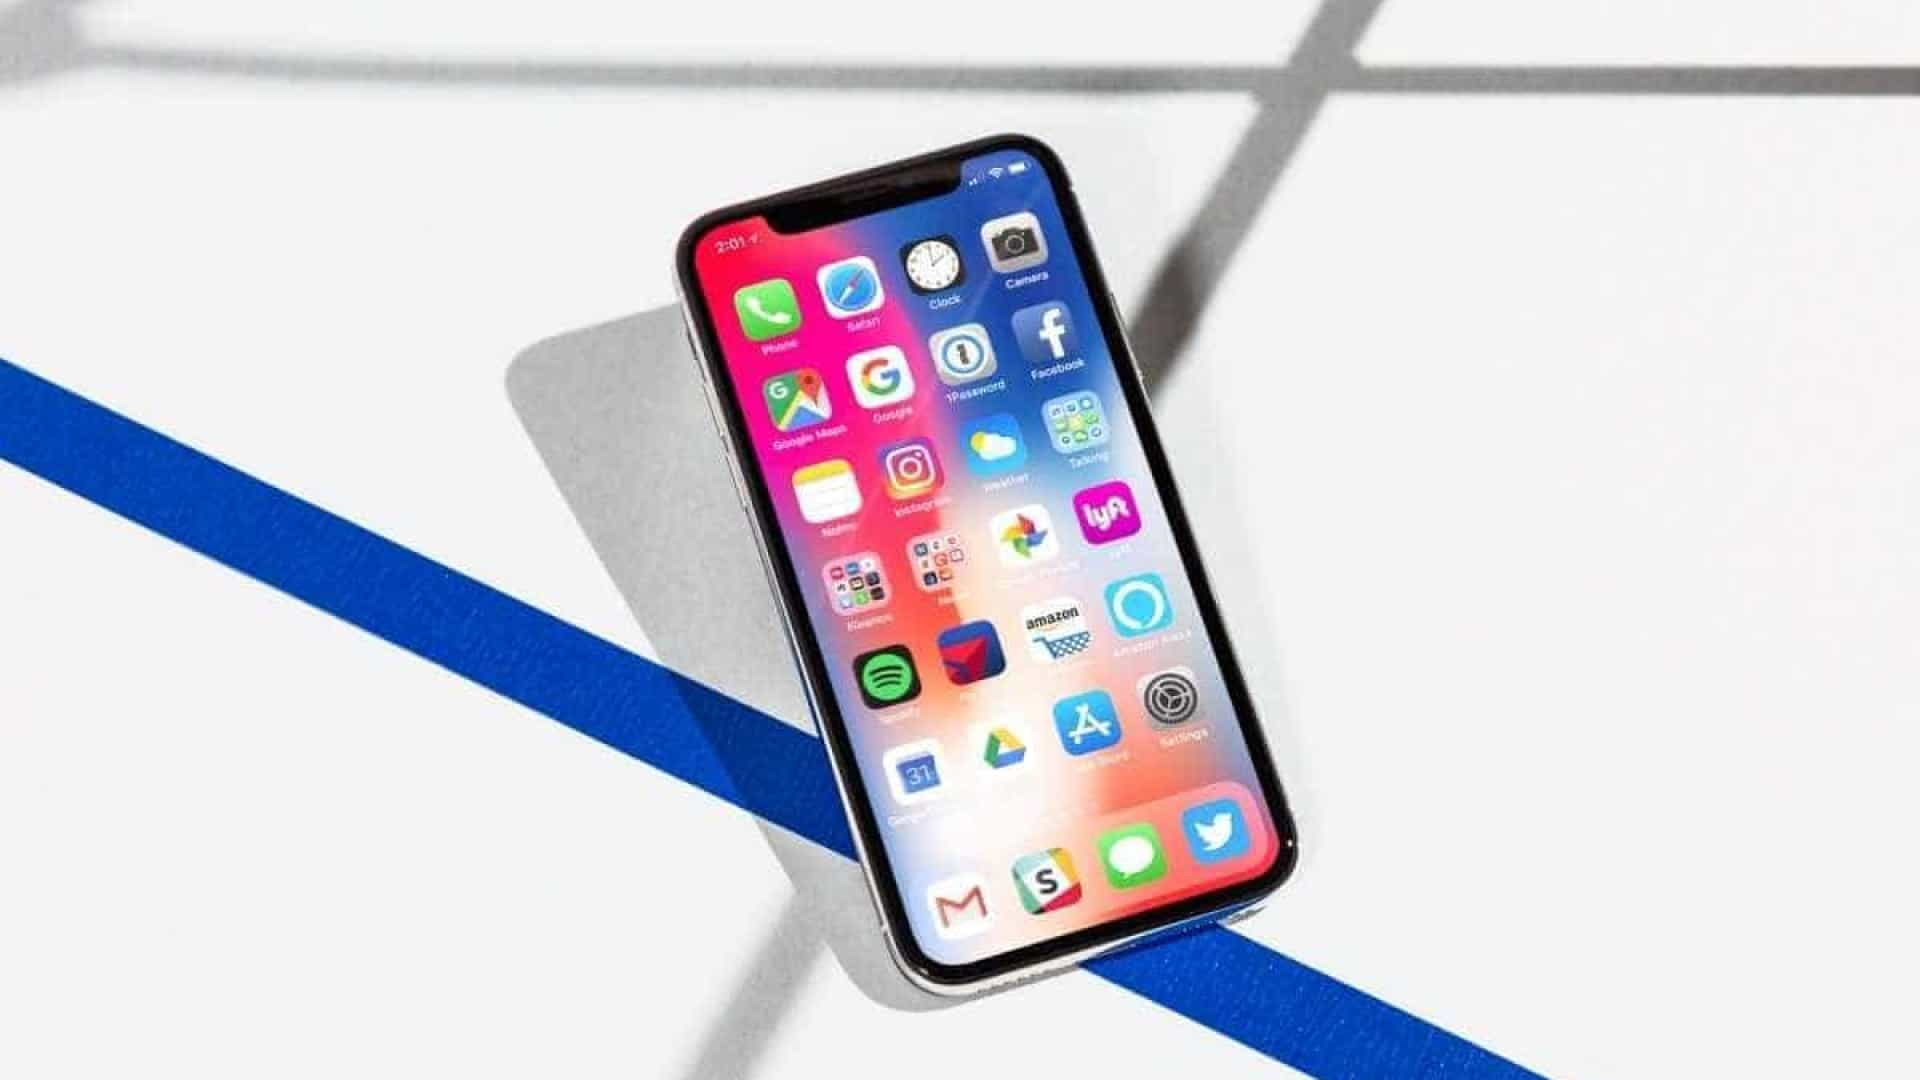 Apple obriga desenvolvedores a adaptarem apps à tela do iPhone X